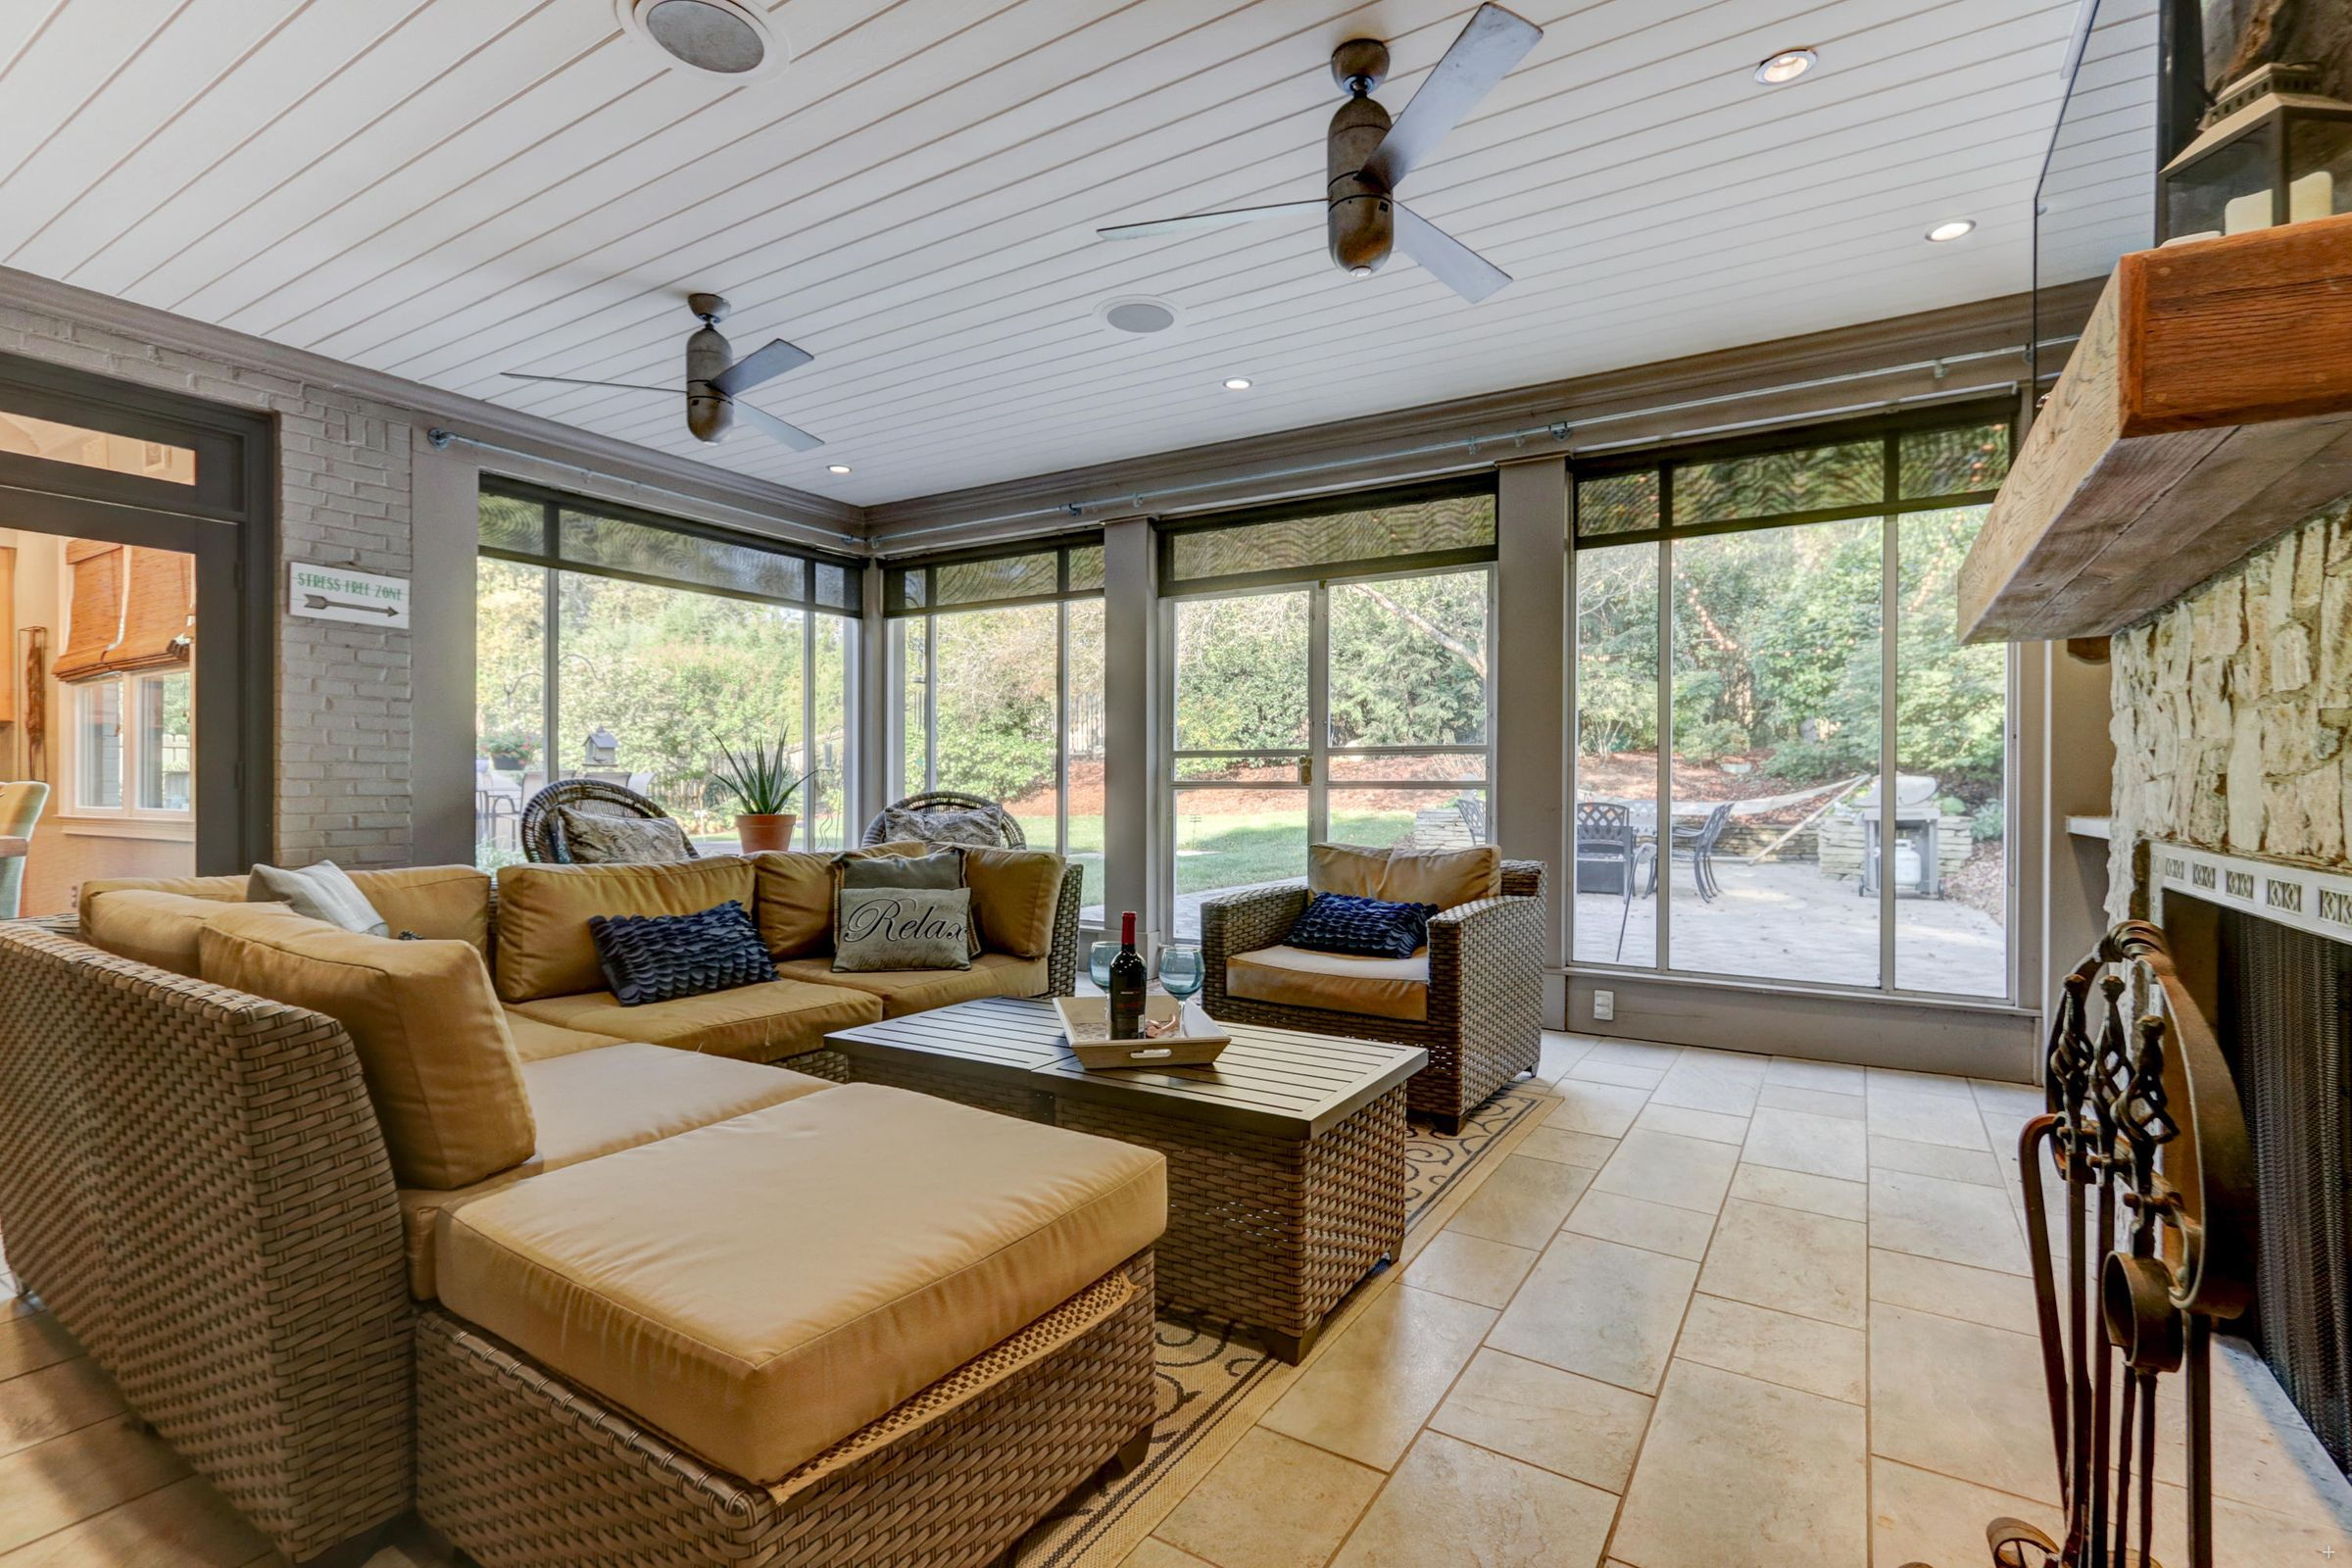 Screened Porch for Entertaining